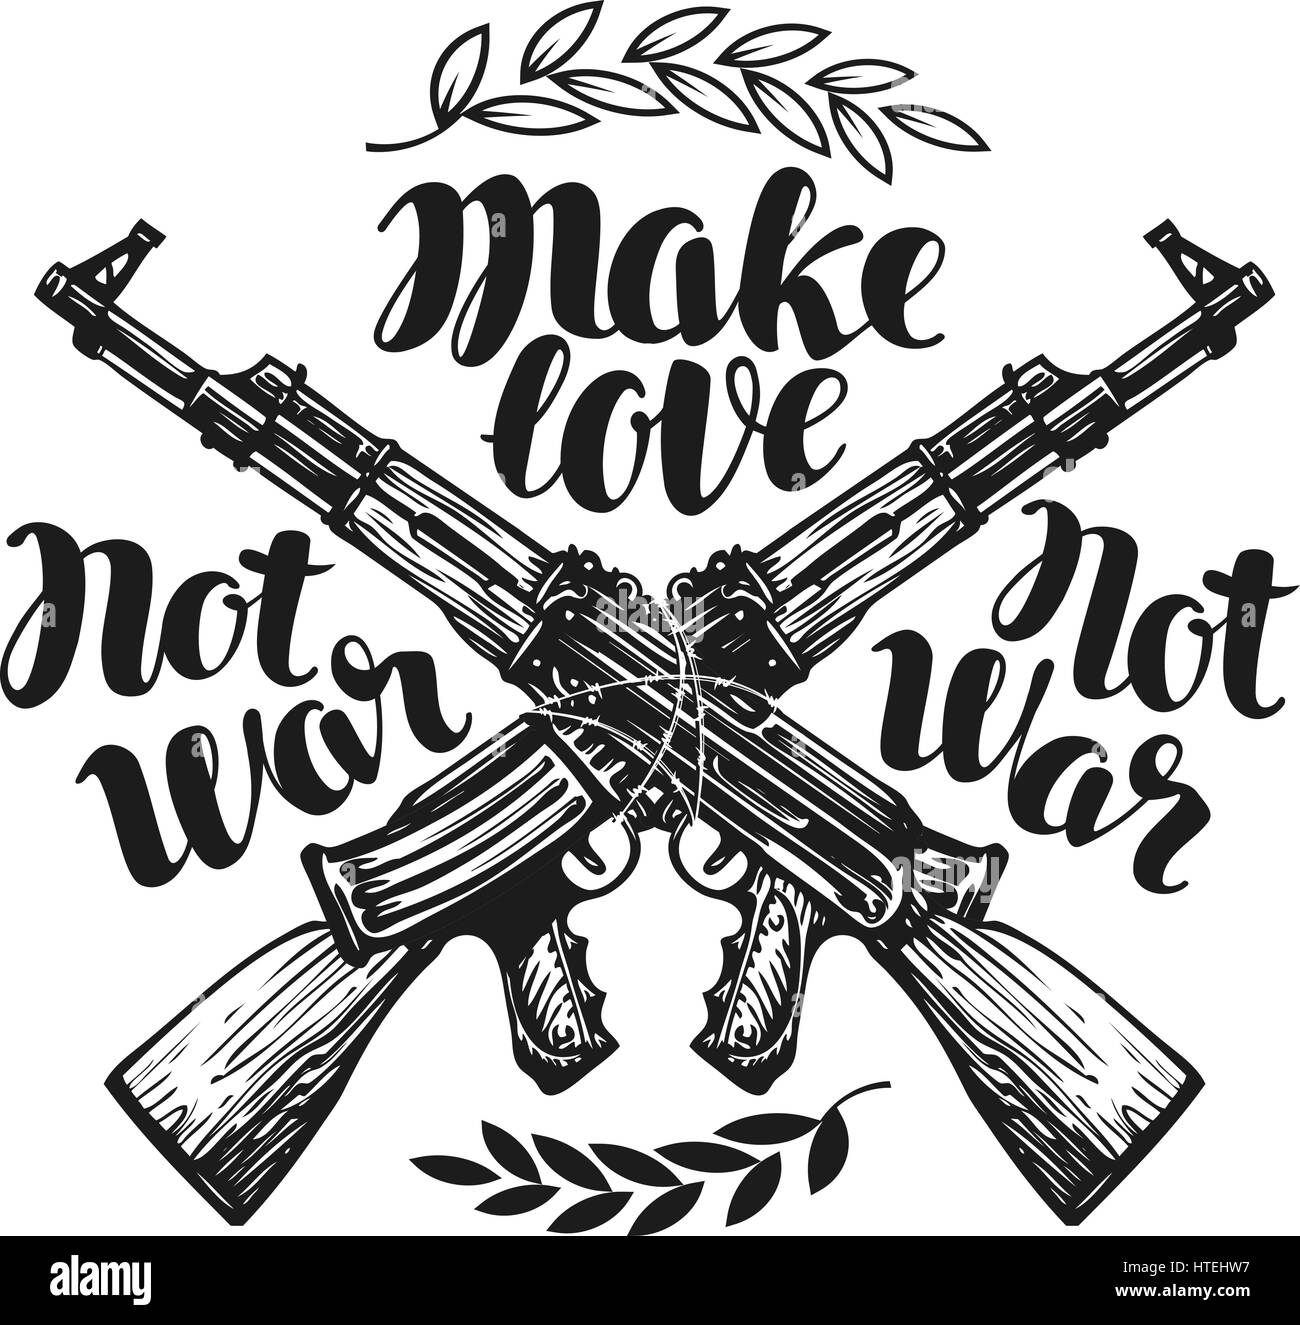 Make love not war, label. Crossed assault riffle associated barbed wire. Lettering, calligraphy vector illustration - Stock Image